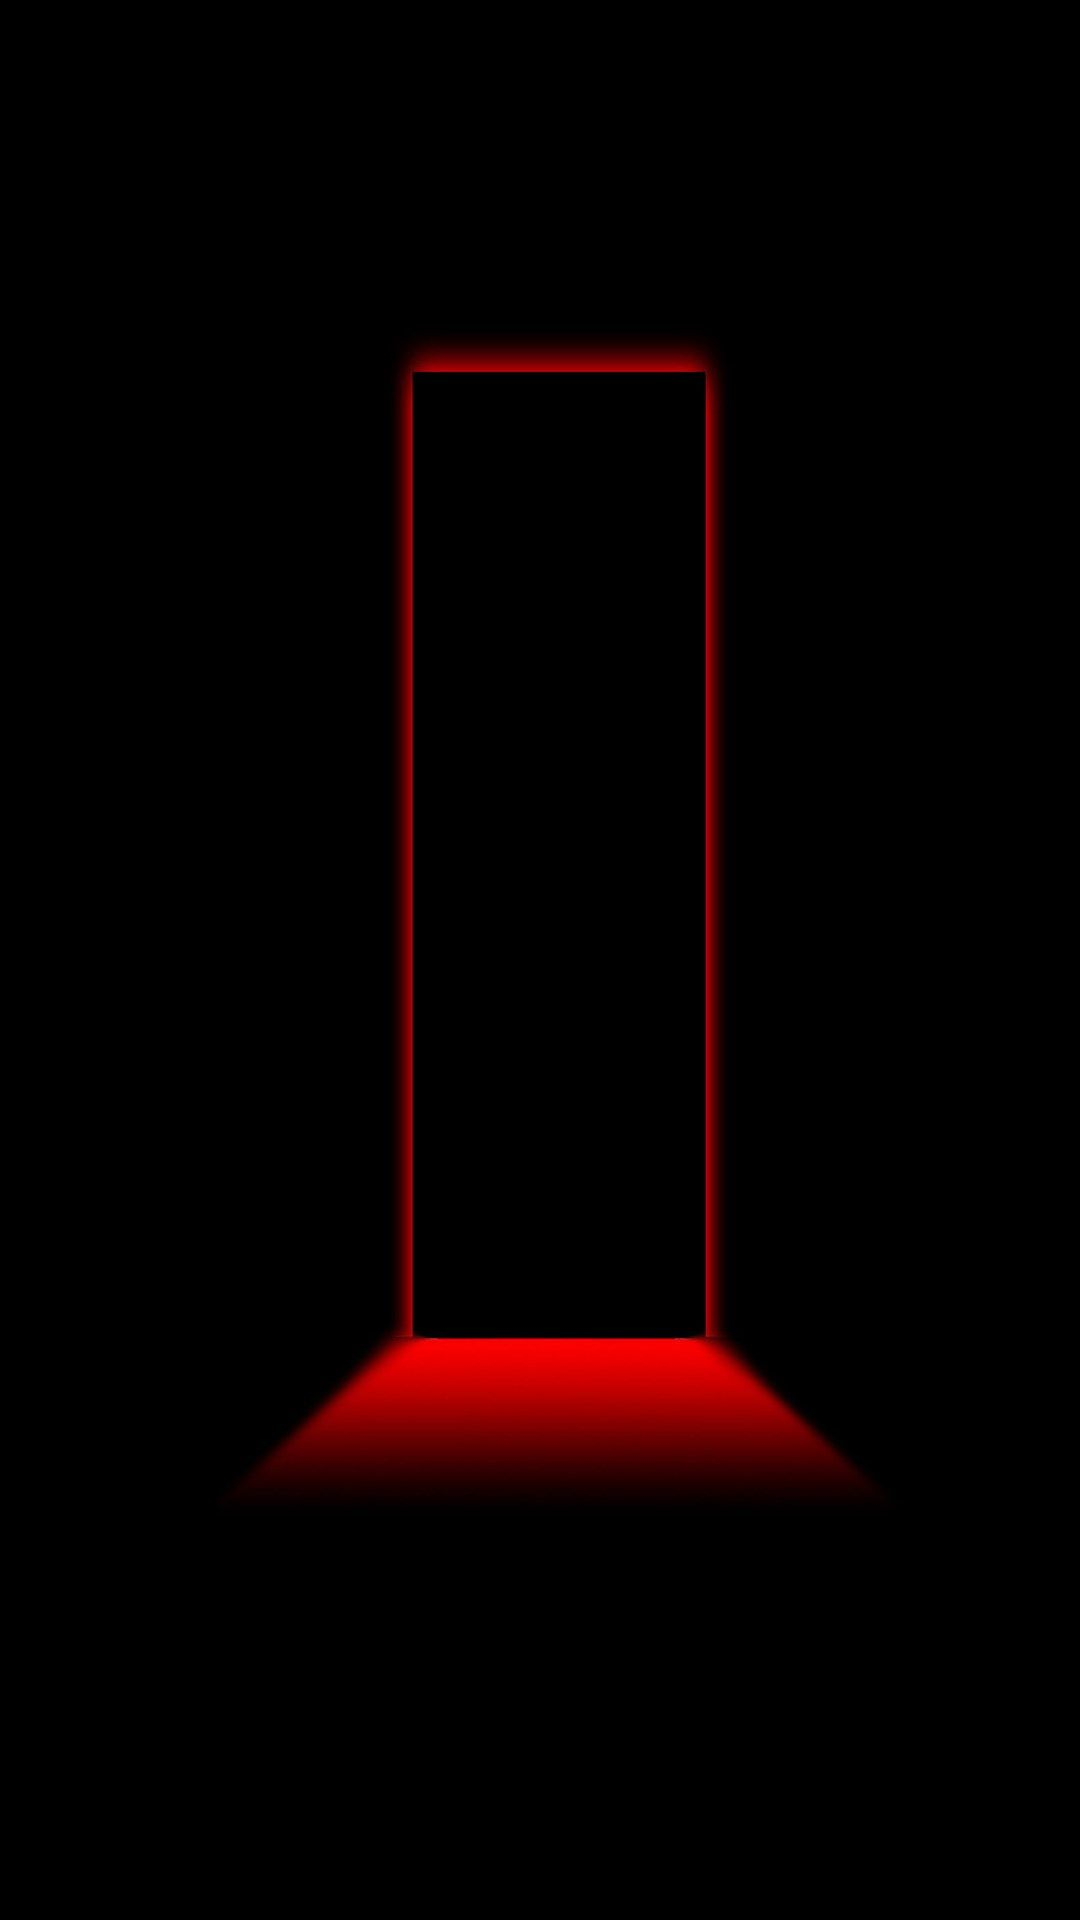 3d Black And Red Line Iphone 5s Hd Wallpapers Free Download Seni Abstrak Gambar